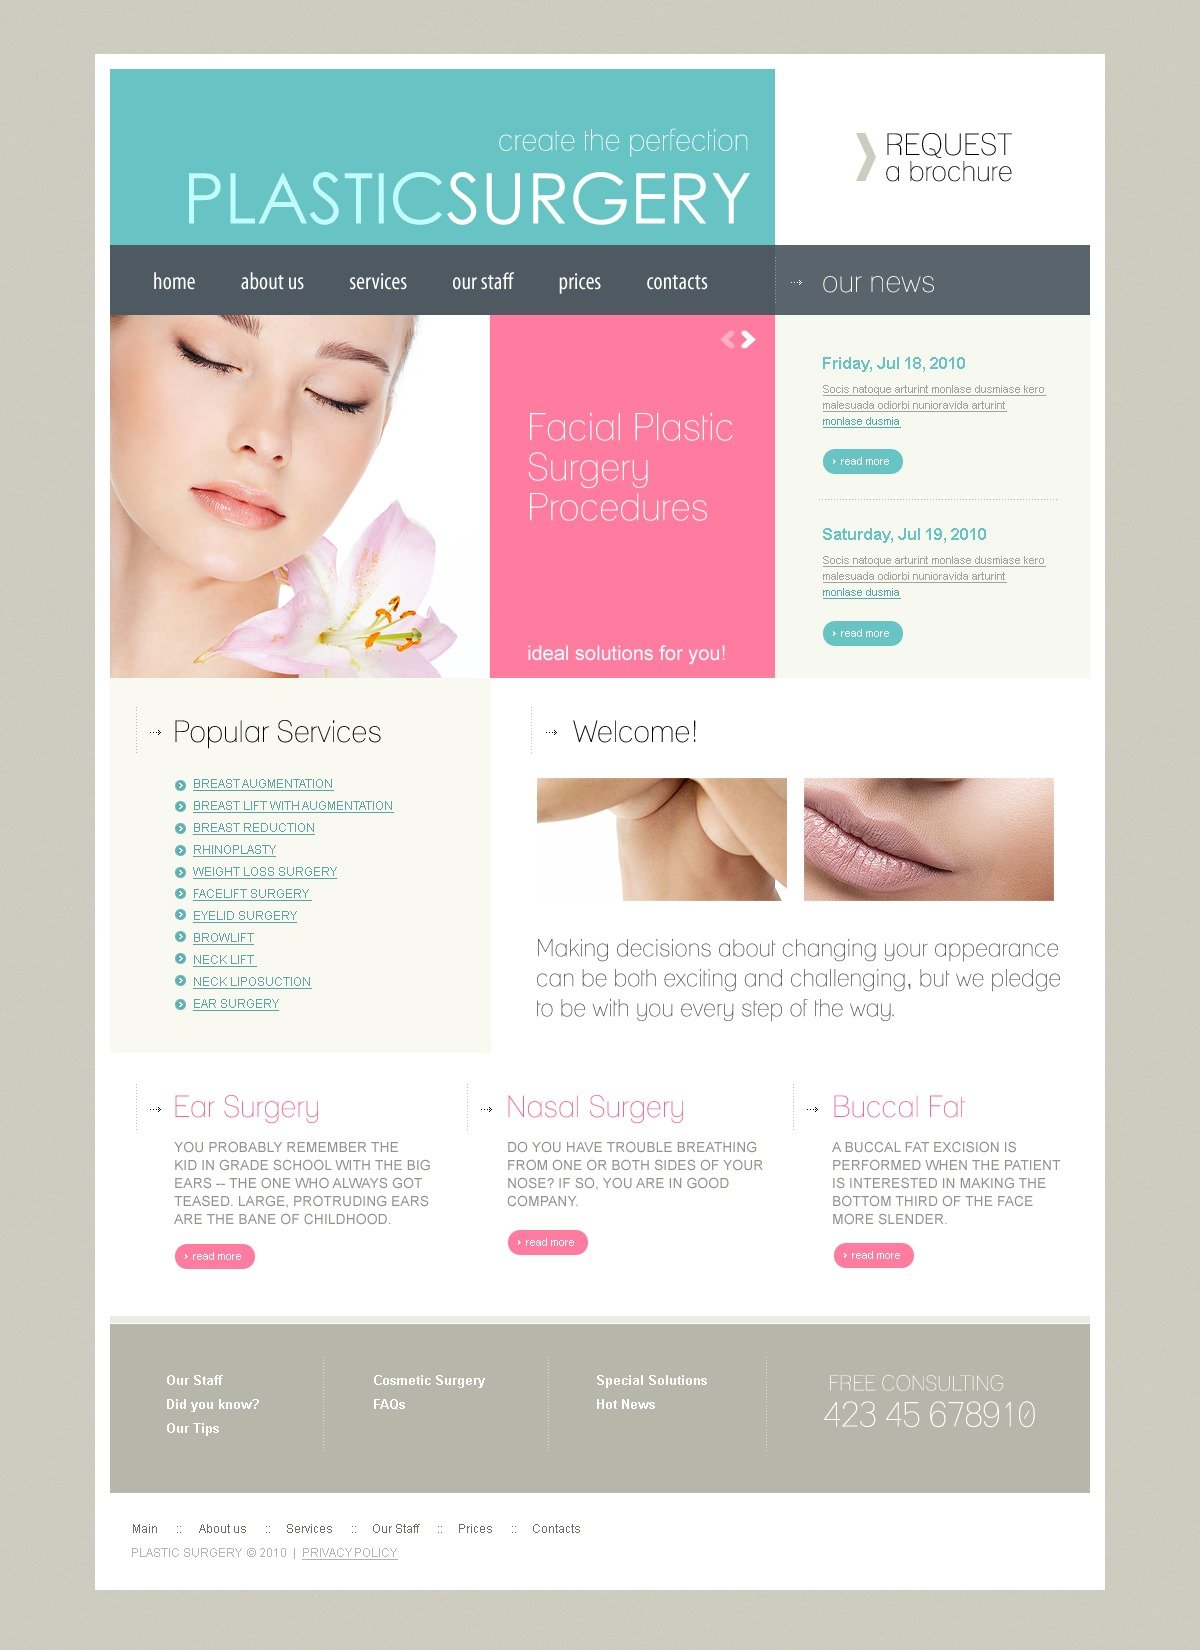 The Plastic Surgery PSD Design 54366, one of the best PSD templates of its kind (medical, wide, jquery), also known as plastic surgery PSD template, surgeon PSD template, doctor PSD template, surgery PSD template, face PSD template, beauty PSD template, lifting PSD template, body PSD template, breasts clinic PSD template, services PSD template, client PSD template, testimonials PSD template, body PSD template, help PSD template, inspection PSD template, equipment PSD template, patients PSD template, medicine PSD template, healthcare PSD template, consultation PSD template, specialists PSD template, procedure PSD template, drugs PSD template, pills PSD template, cure PSD template, vaccine PSD template, treatment and related with plastic surgery, surgeon, doctor, surgery, face, beauty, lifting, body, breasts clinic, services, client, testimonials, body, help, inspection, equipment, patients, medicine, healthcare, consultation, specialists, procedure, drugs, pills, cure, vaccine, treatment, etc.